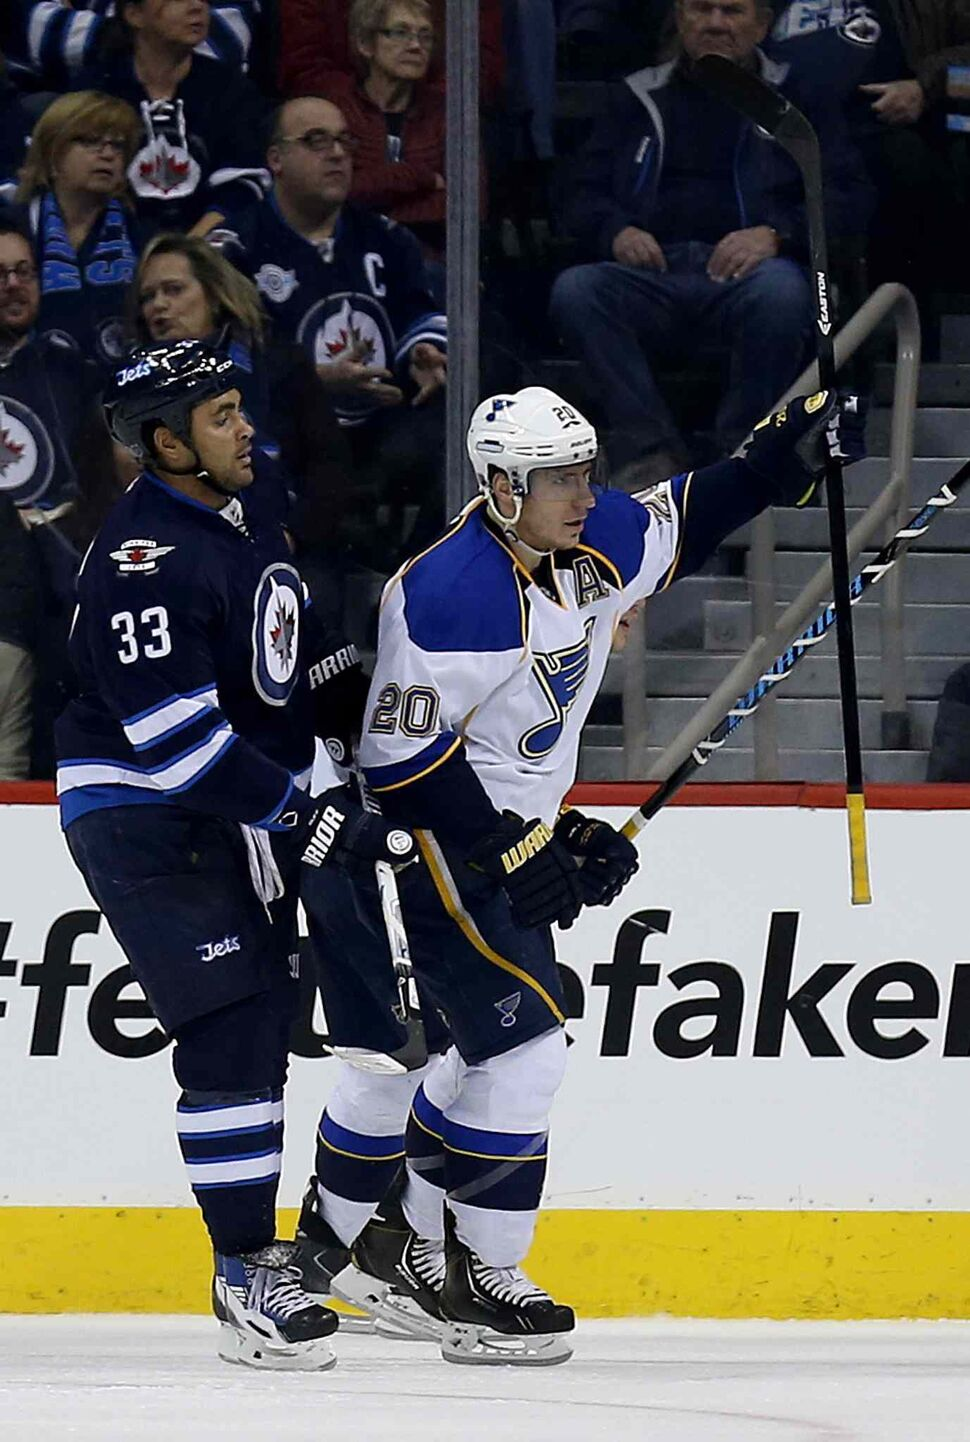 St. Louis Blues forward Alexander Steen (20) celebrates in front of Winnipeg Jets defenceman Dustin Byfuglien after scoring a goal during the second period of an NHL game against at the MTS Centre in Winnipeg Tuesday, Dec. 10, 2013. (TREVOR HAGAN / THE CANADIAN PRESS)